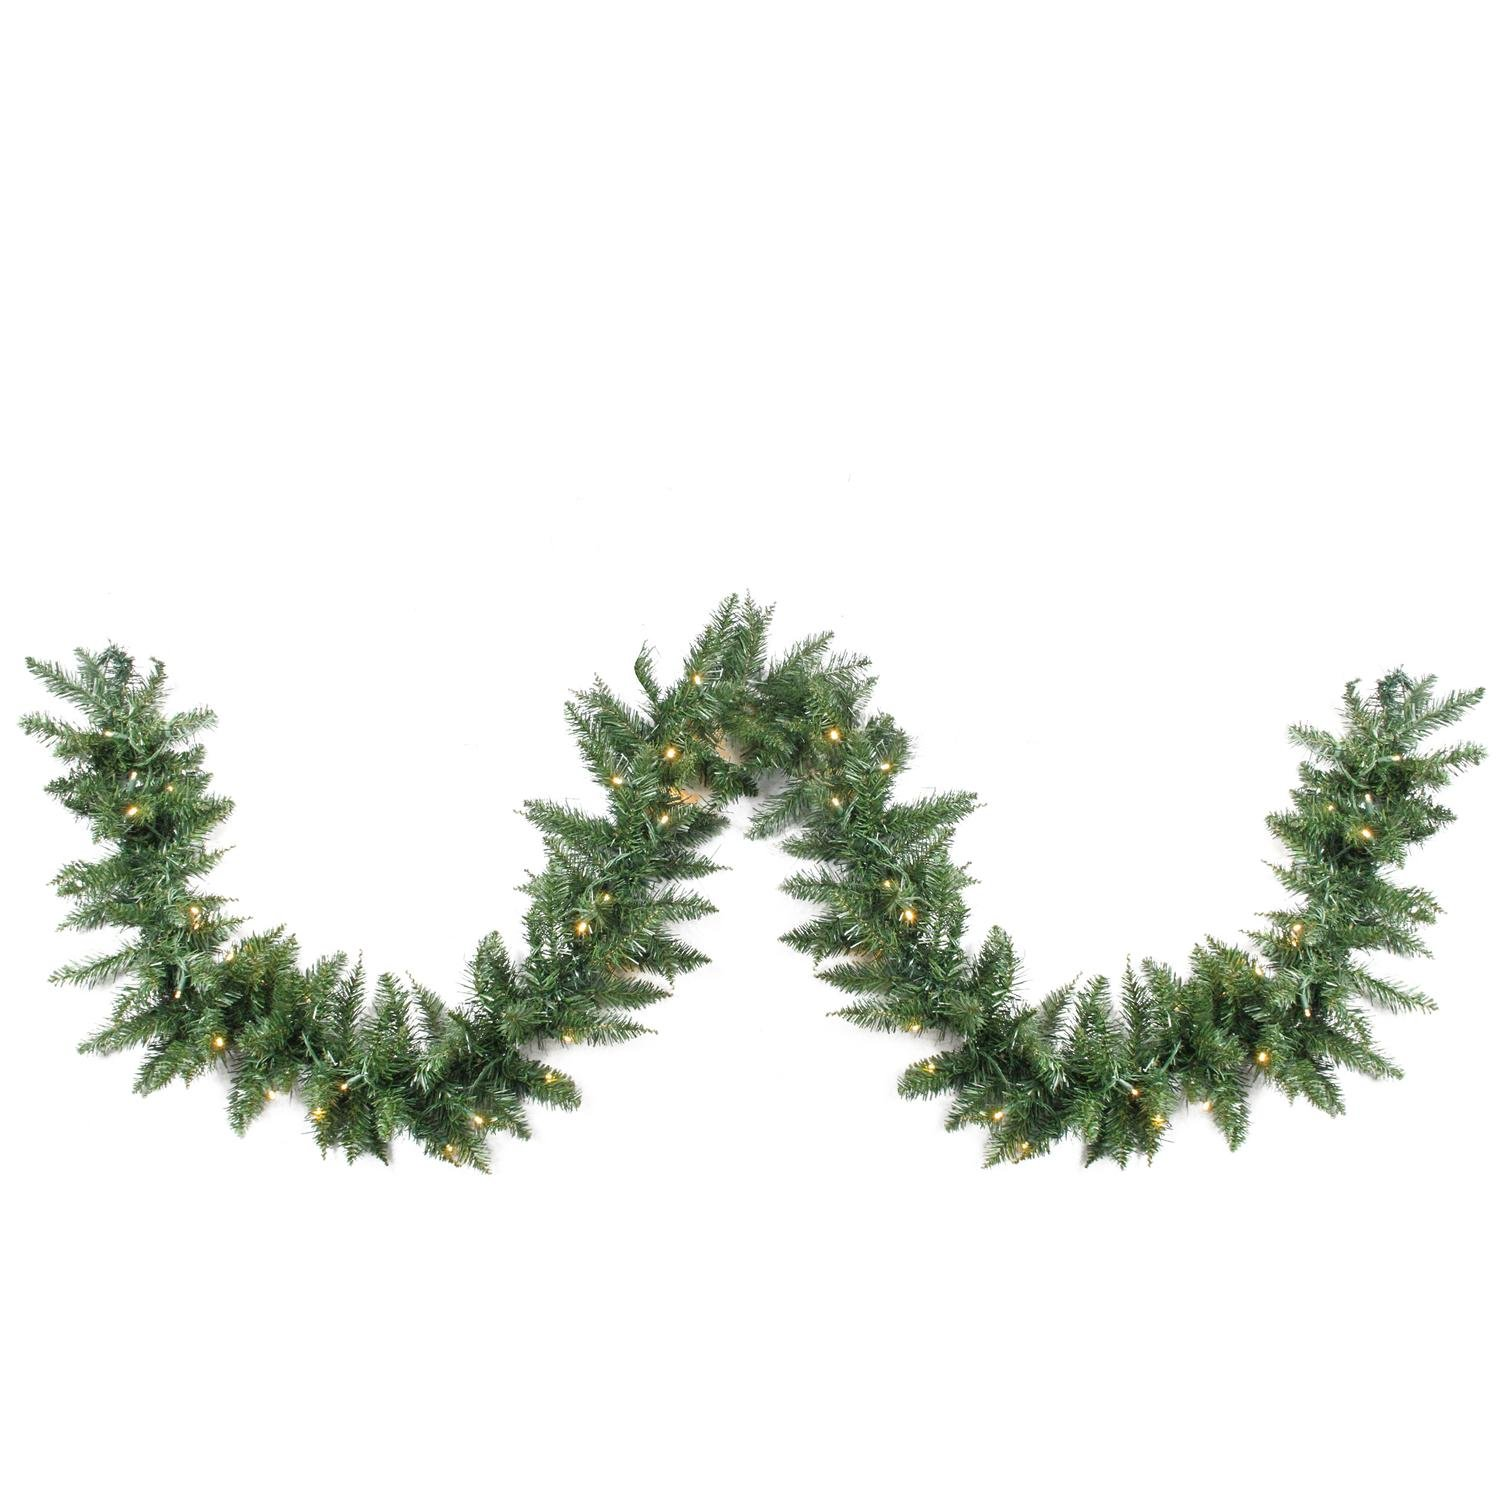 Northlight 50' x 12'' Pre-Lit Buffalo Fir Commercial Artficial Christmas Warm White LED Lights Garland, Green